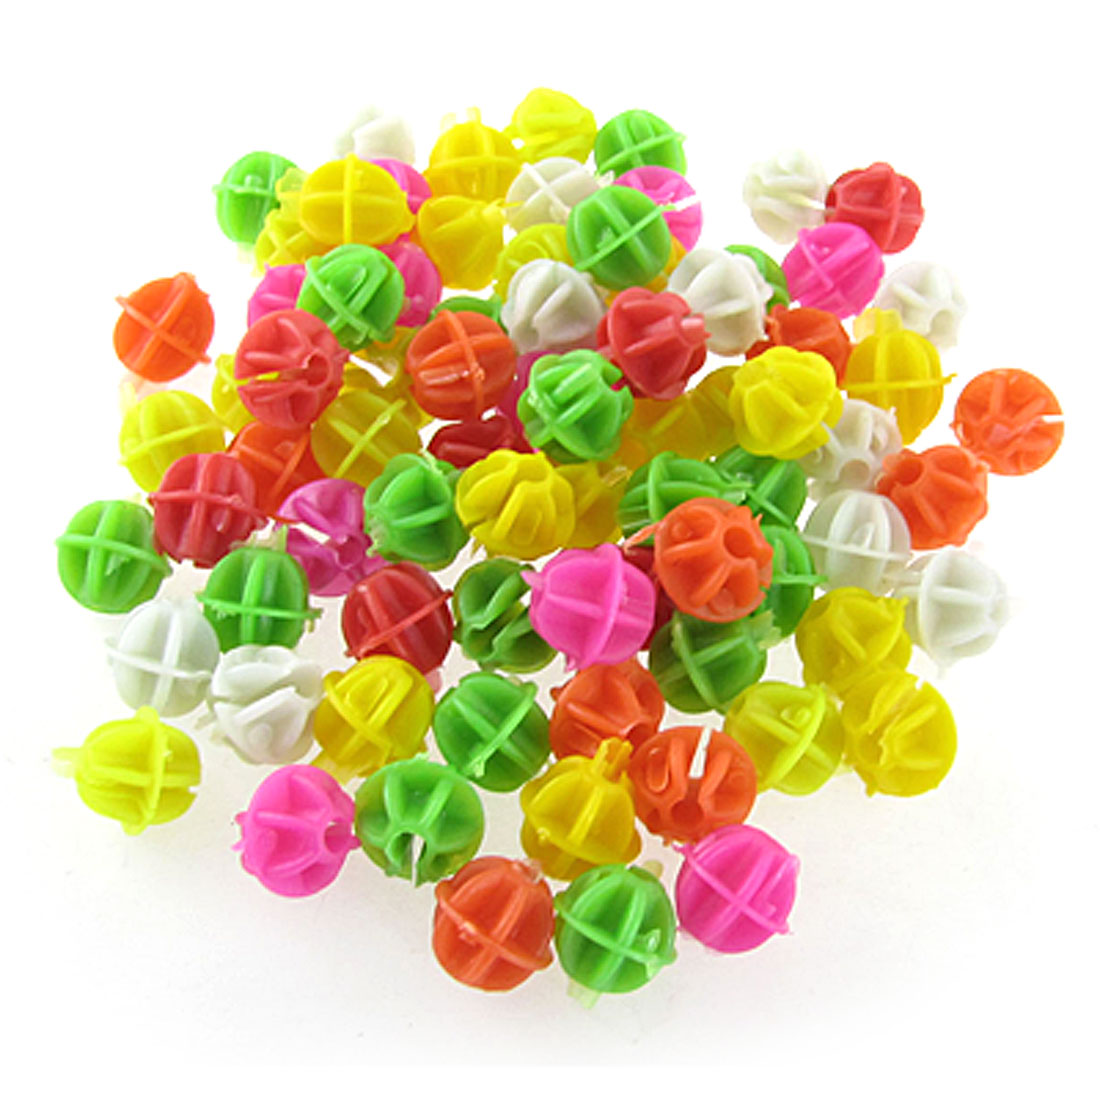 "Bike Bicycle Spoke Colorful 0.55"" Diameter Plastic Beads Decor 80 Pcs"